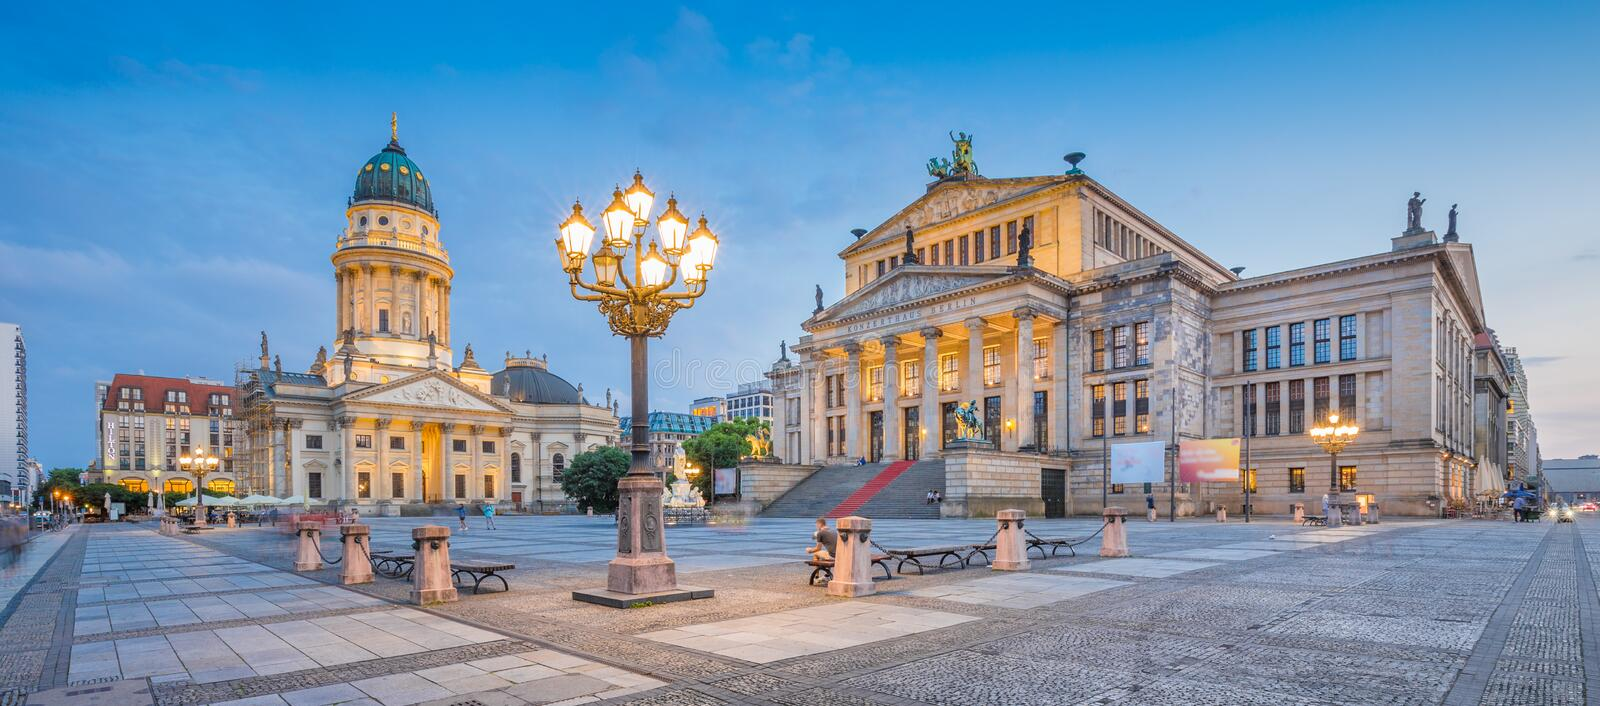 Gendarmenmarkt square panorama at dusk, Berlin, Germany stock images